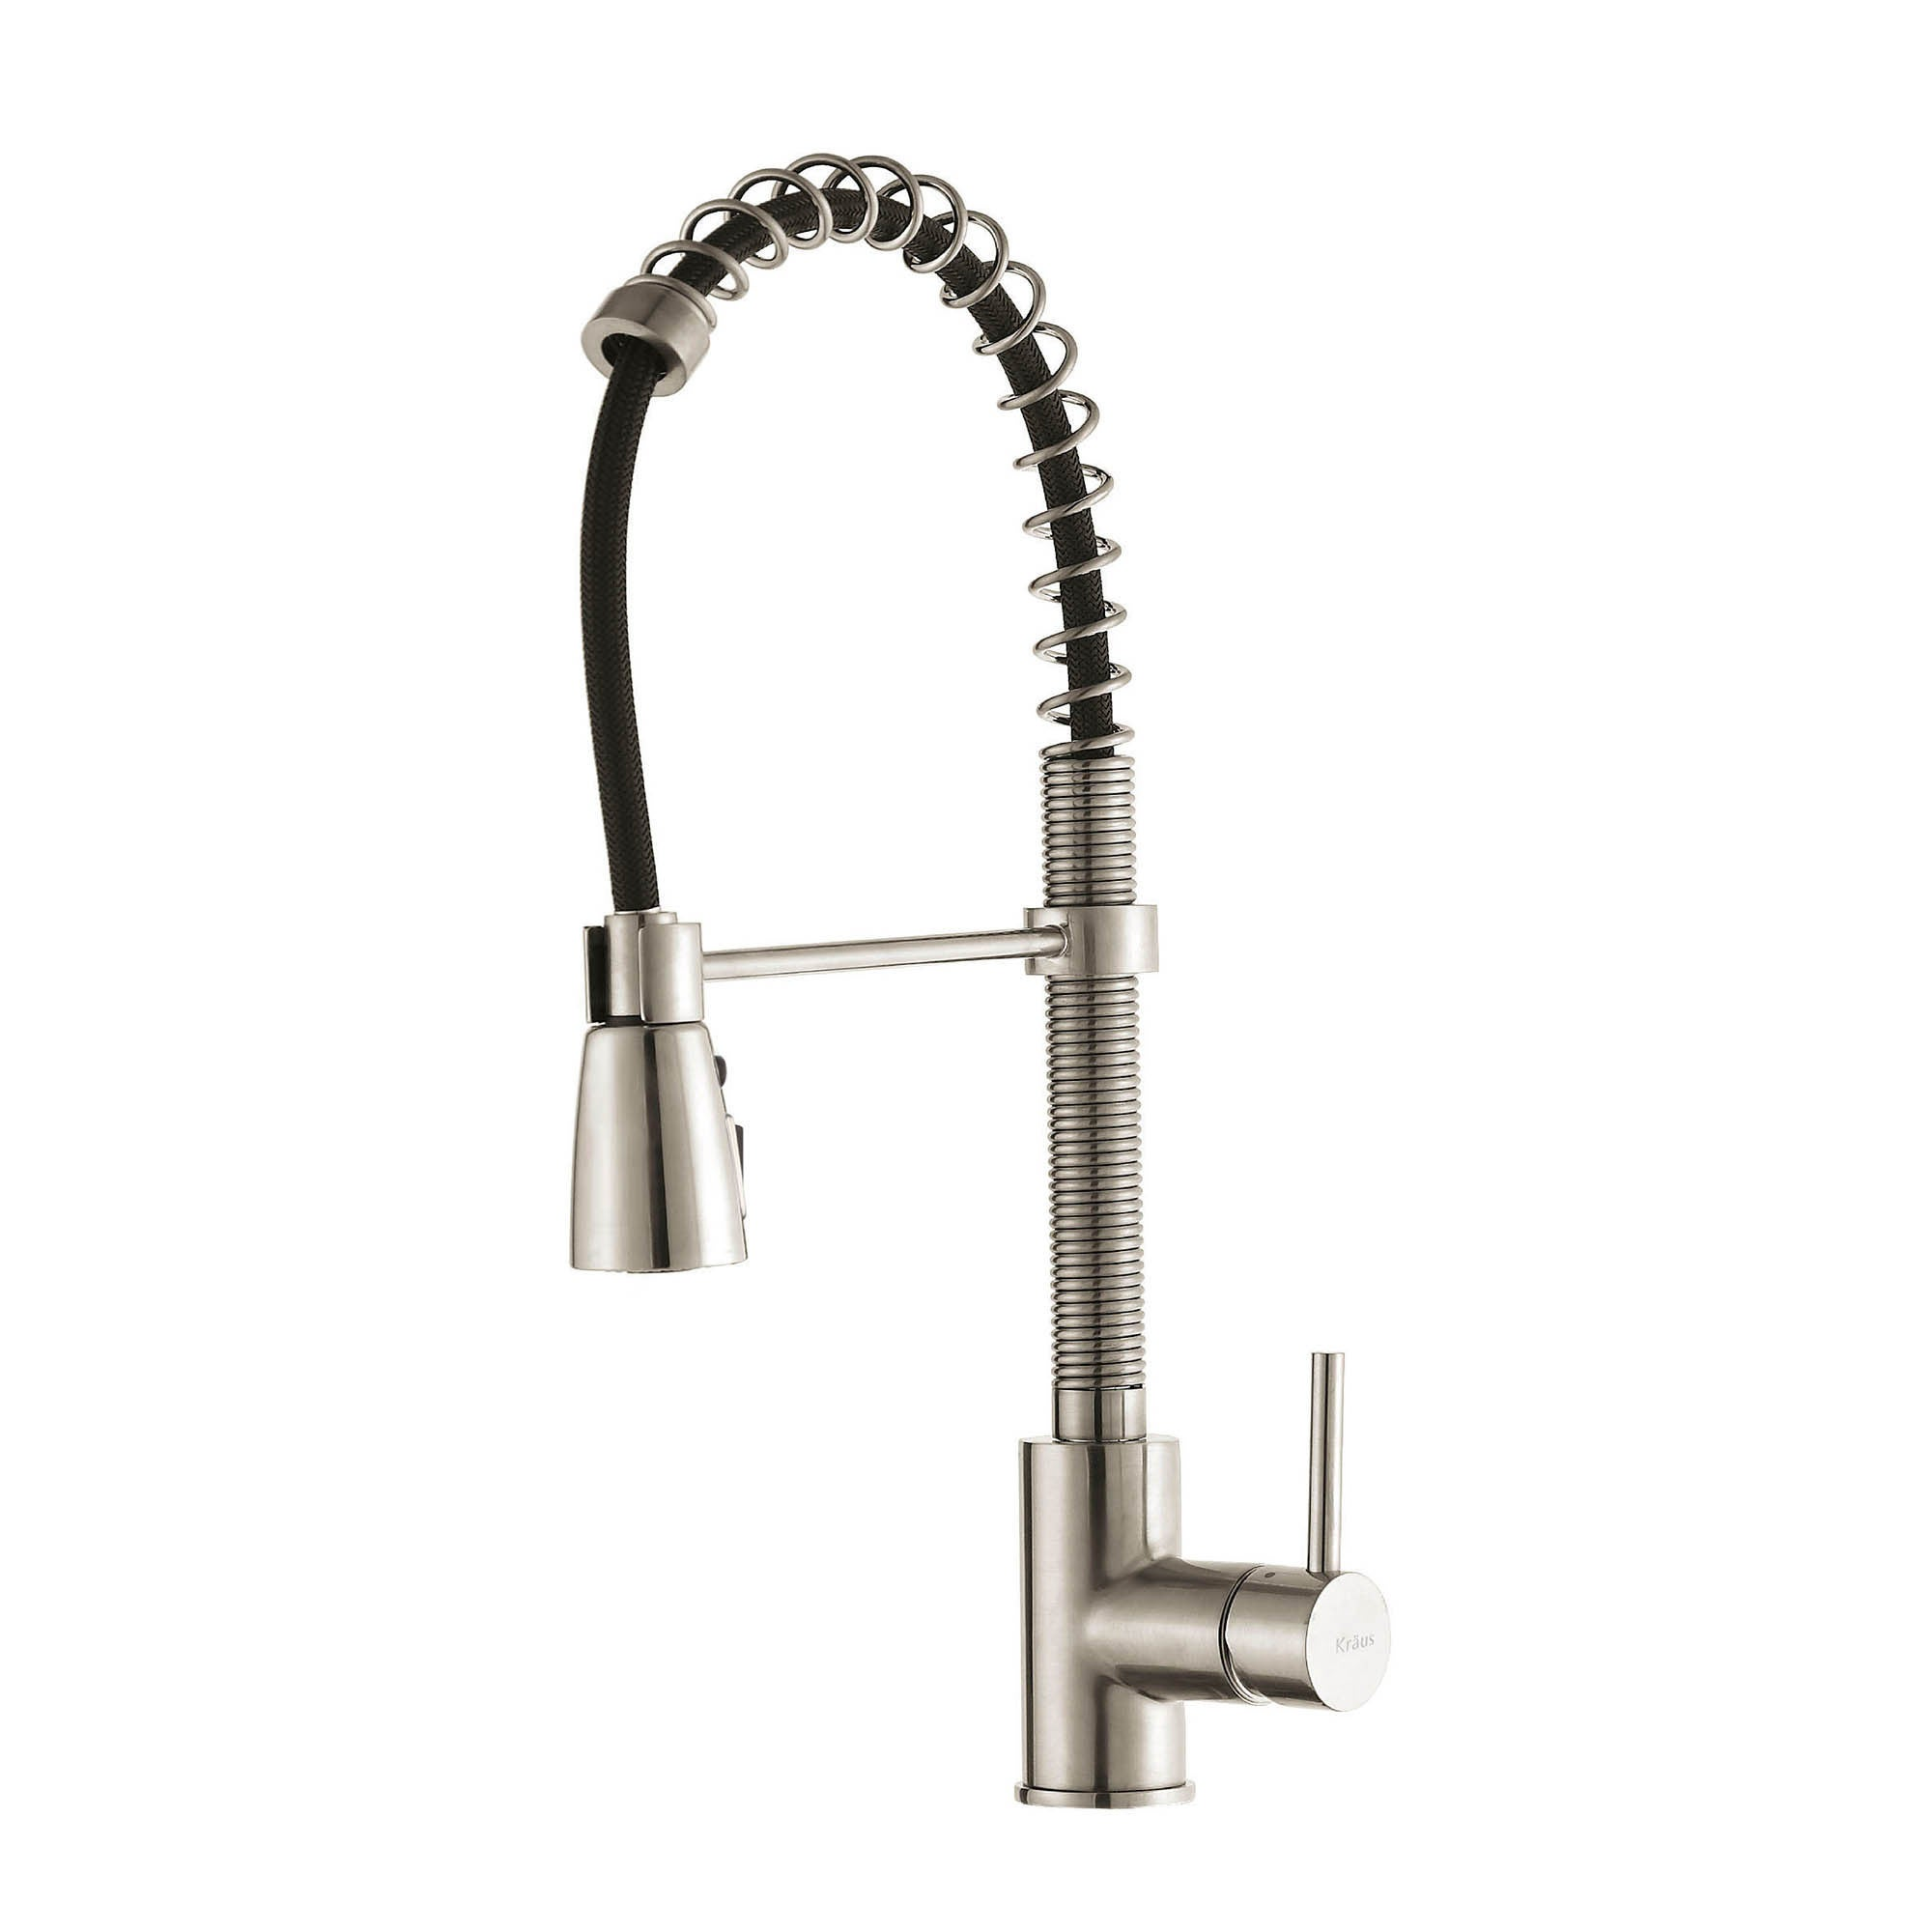 kraus faucet with single kraususa kpf com commercial nola sprayer style lever kitchen